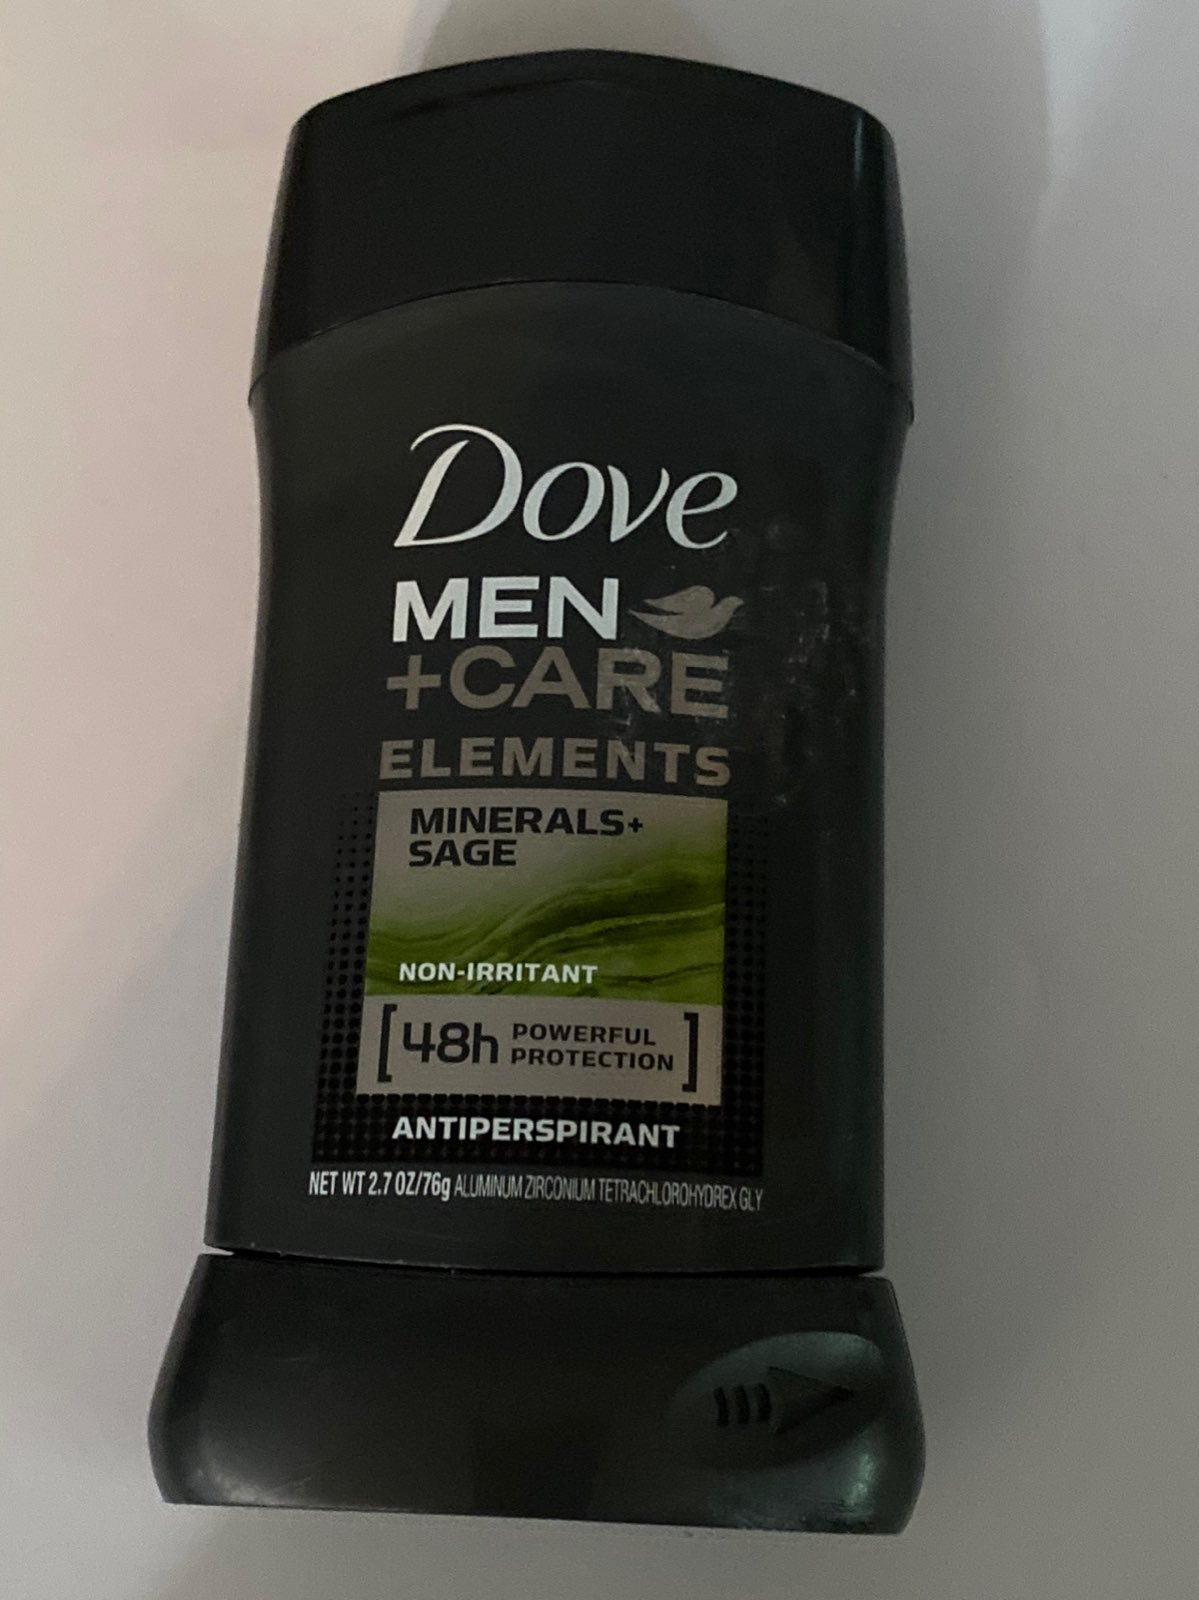 Dove Men + care Elements Antiperspirant